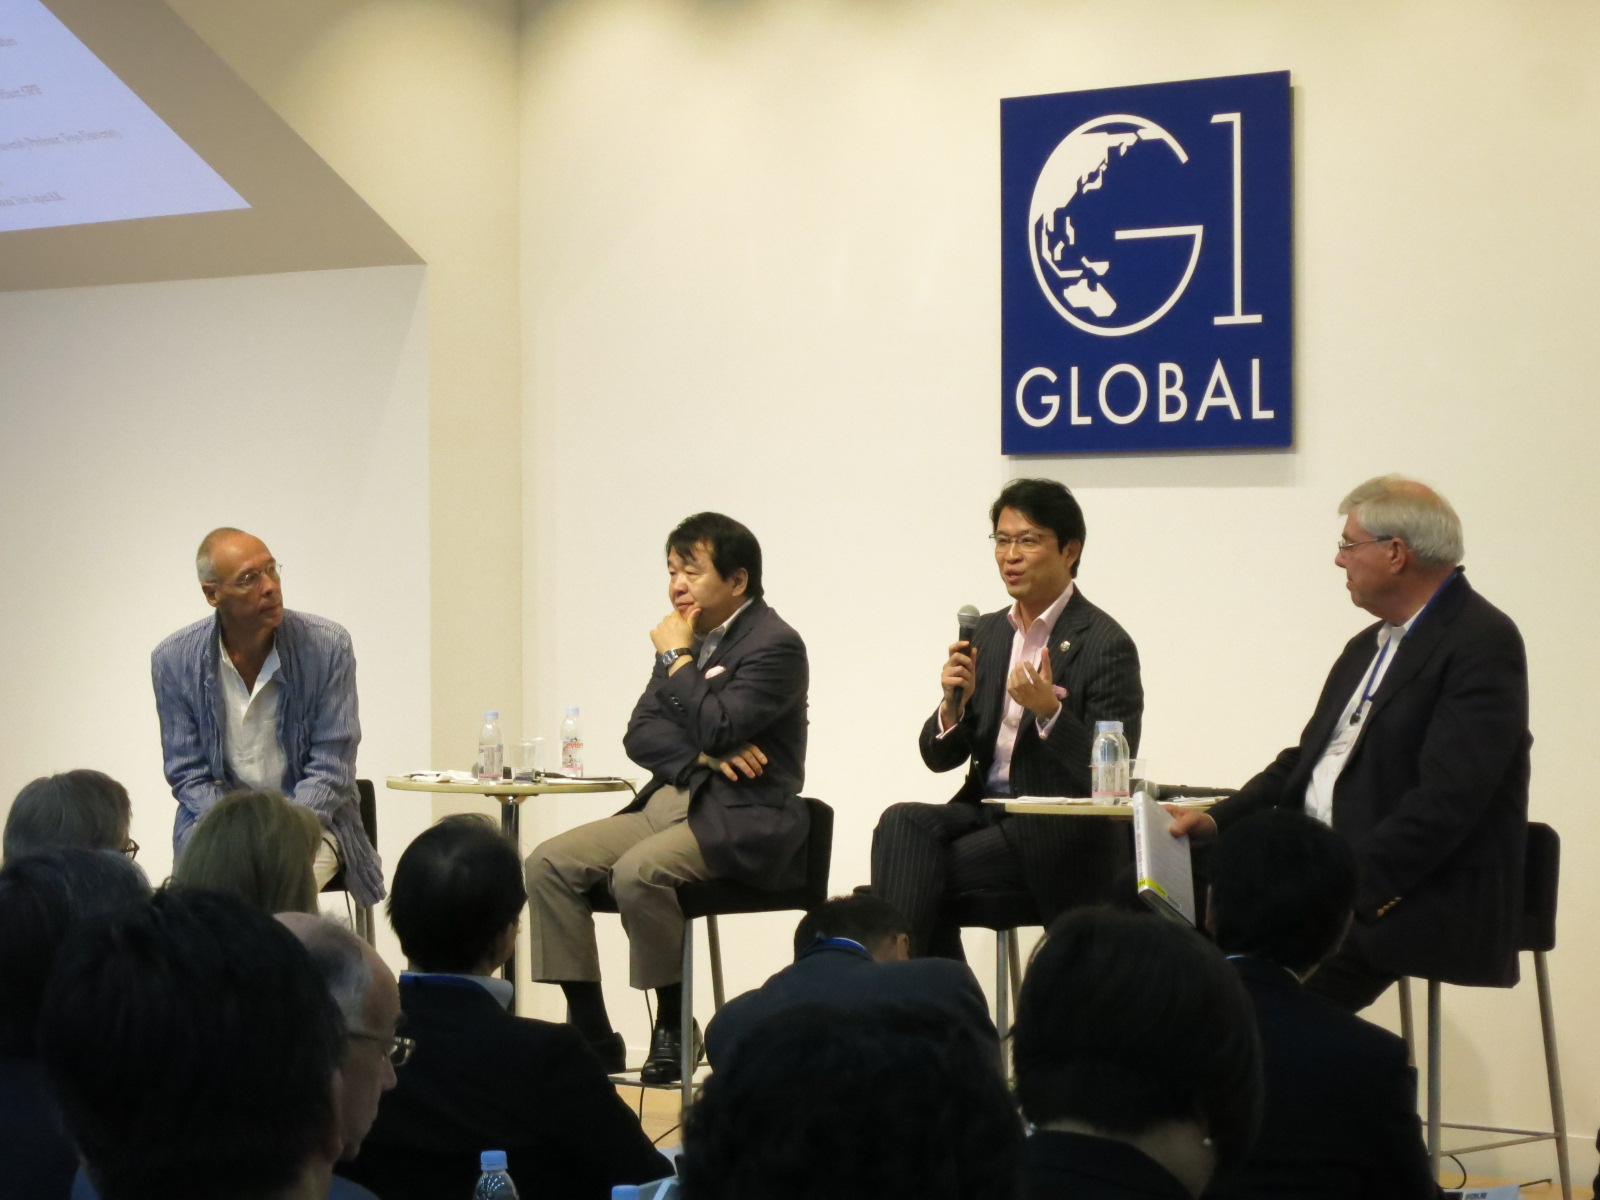 Hiromichi Mizuno (third from left), chief investment officer at GPIF, speaks during a session of the G1 Global Conference at Globis University in Tokyo on Monday. Other panelists (from left) are Jesper Koll, CEO of Wisdom Tree Japan; Heizo Takenaka, professor emeritus at Keio University; and Richard McCormack, senior adviser at the Center for Strategic and International Studies. | KAZUAKI NAGATA